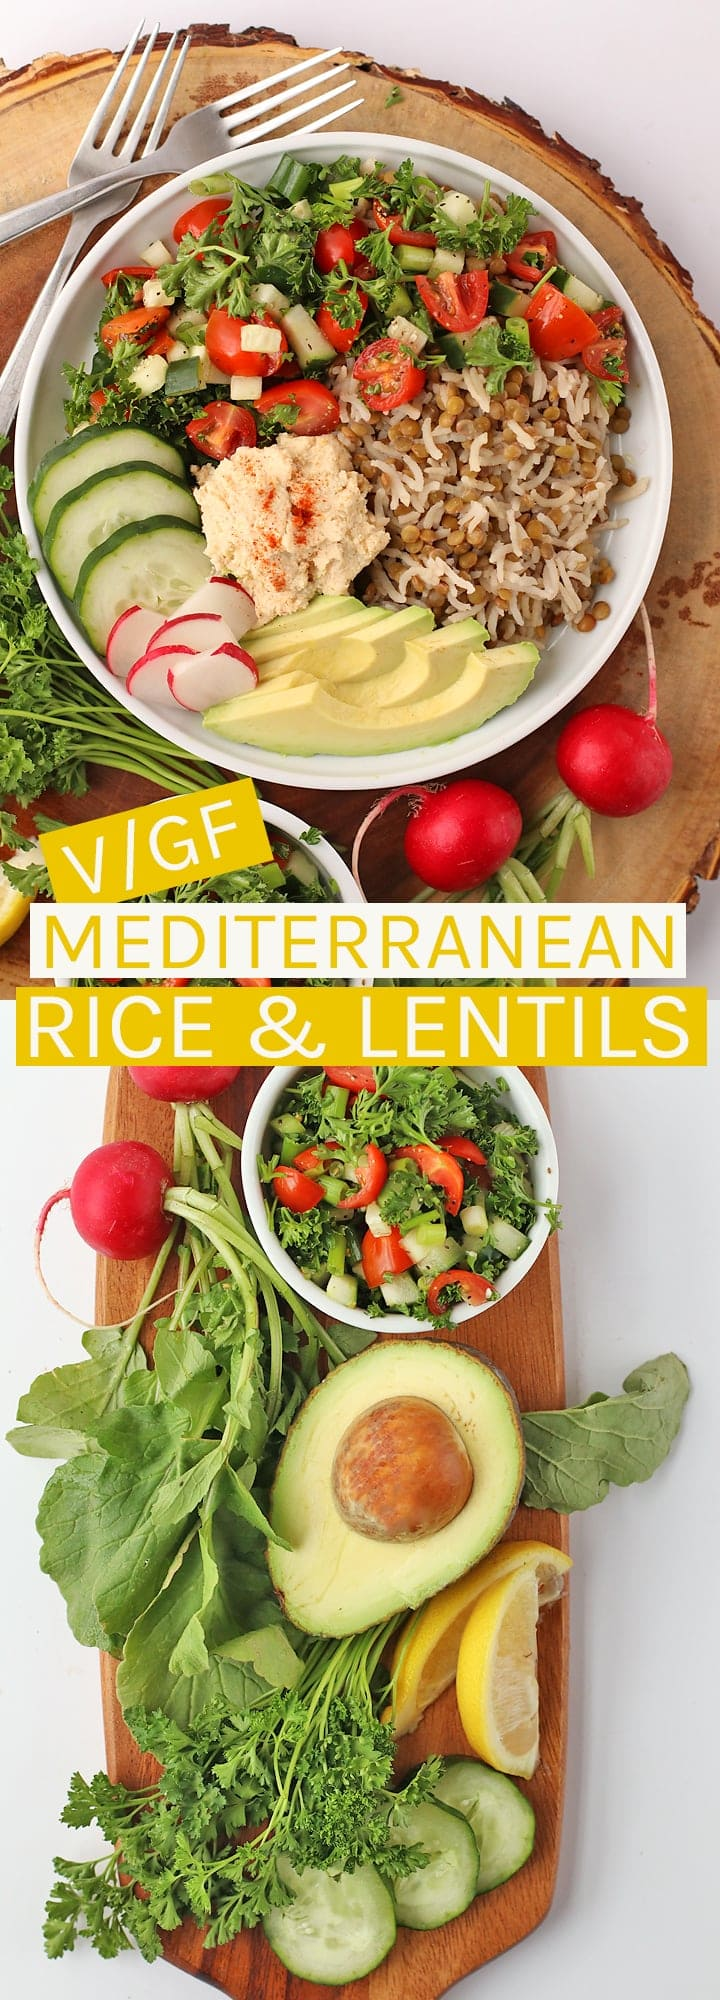 Enjoy this refreshing vegan and gluten-free Mediterranean Rice & Lentils made with fresh cucumber salad and homemade hummus.